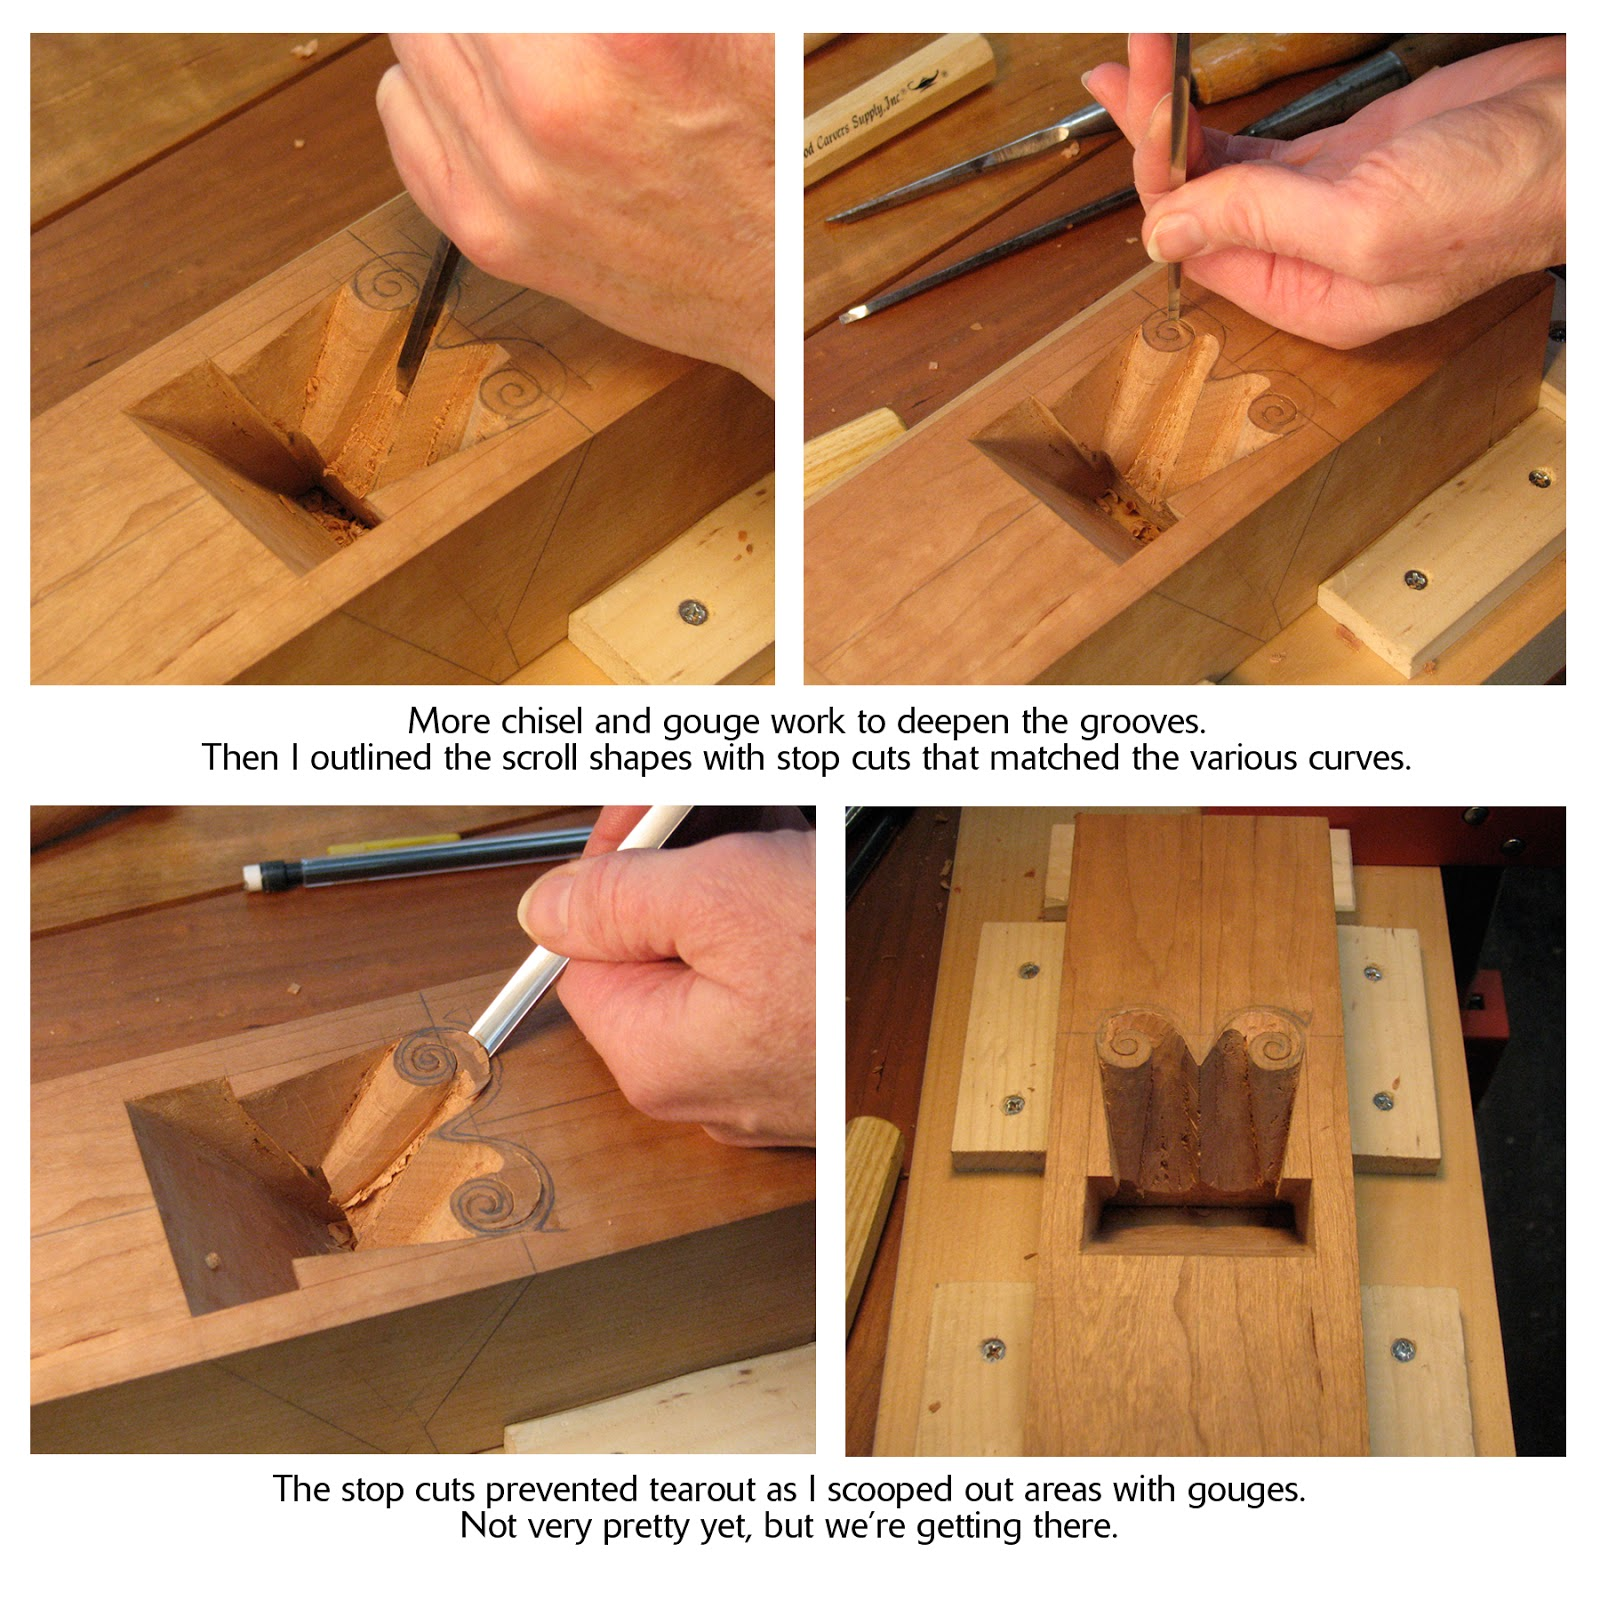 Wood Shop Projects : Building A Beehive From A Hive Plan